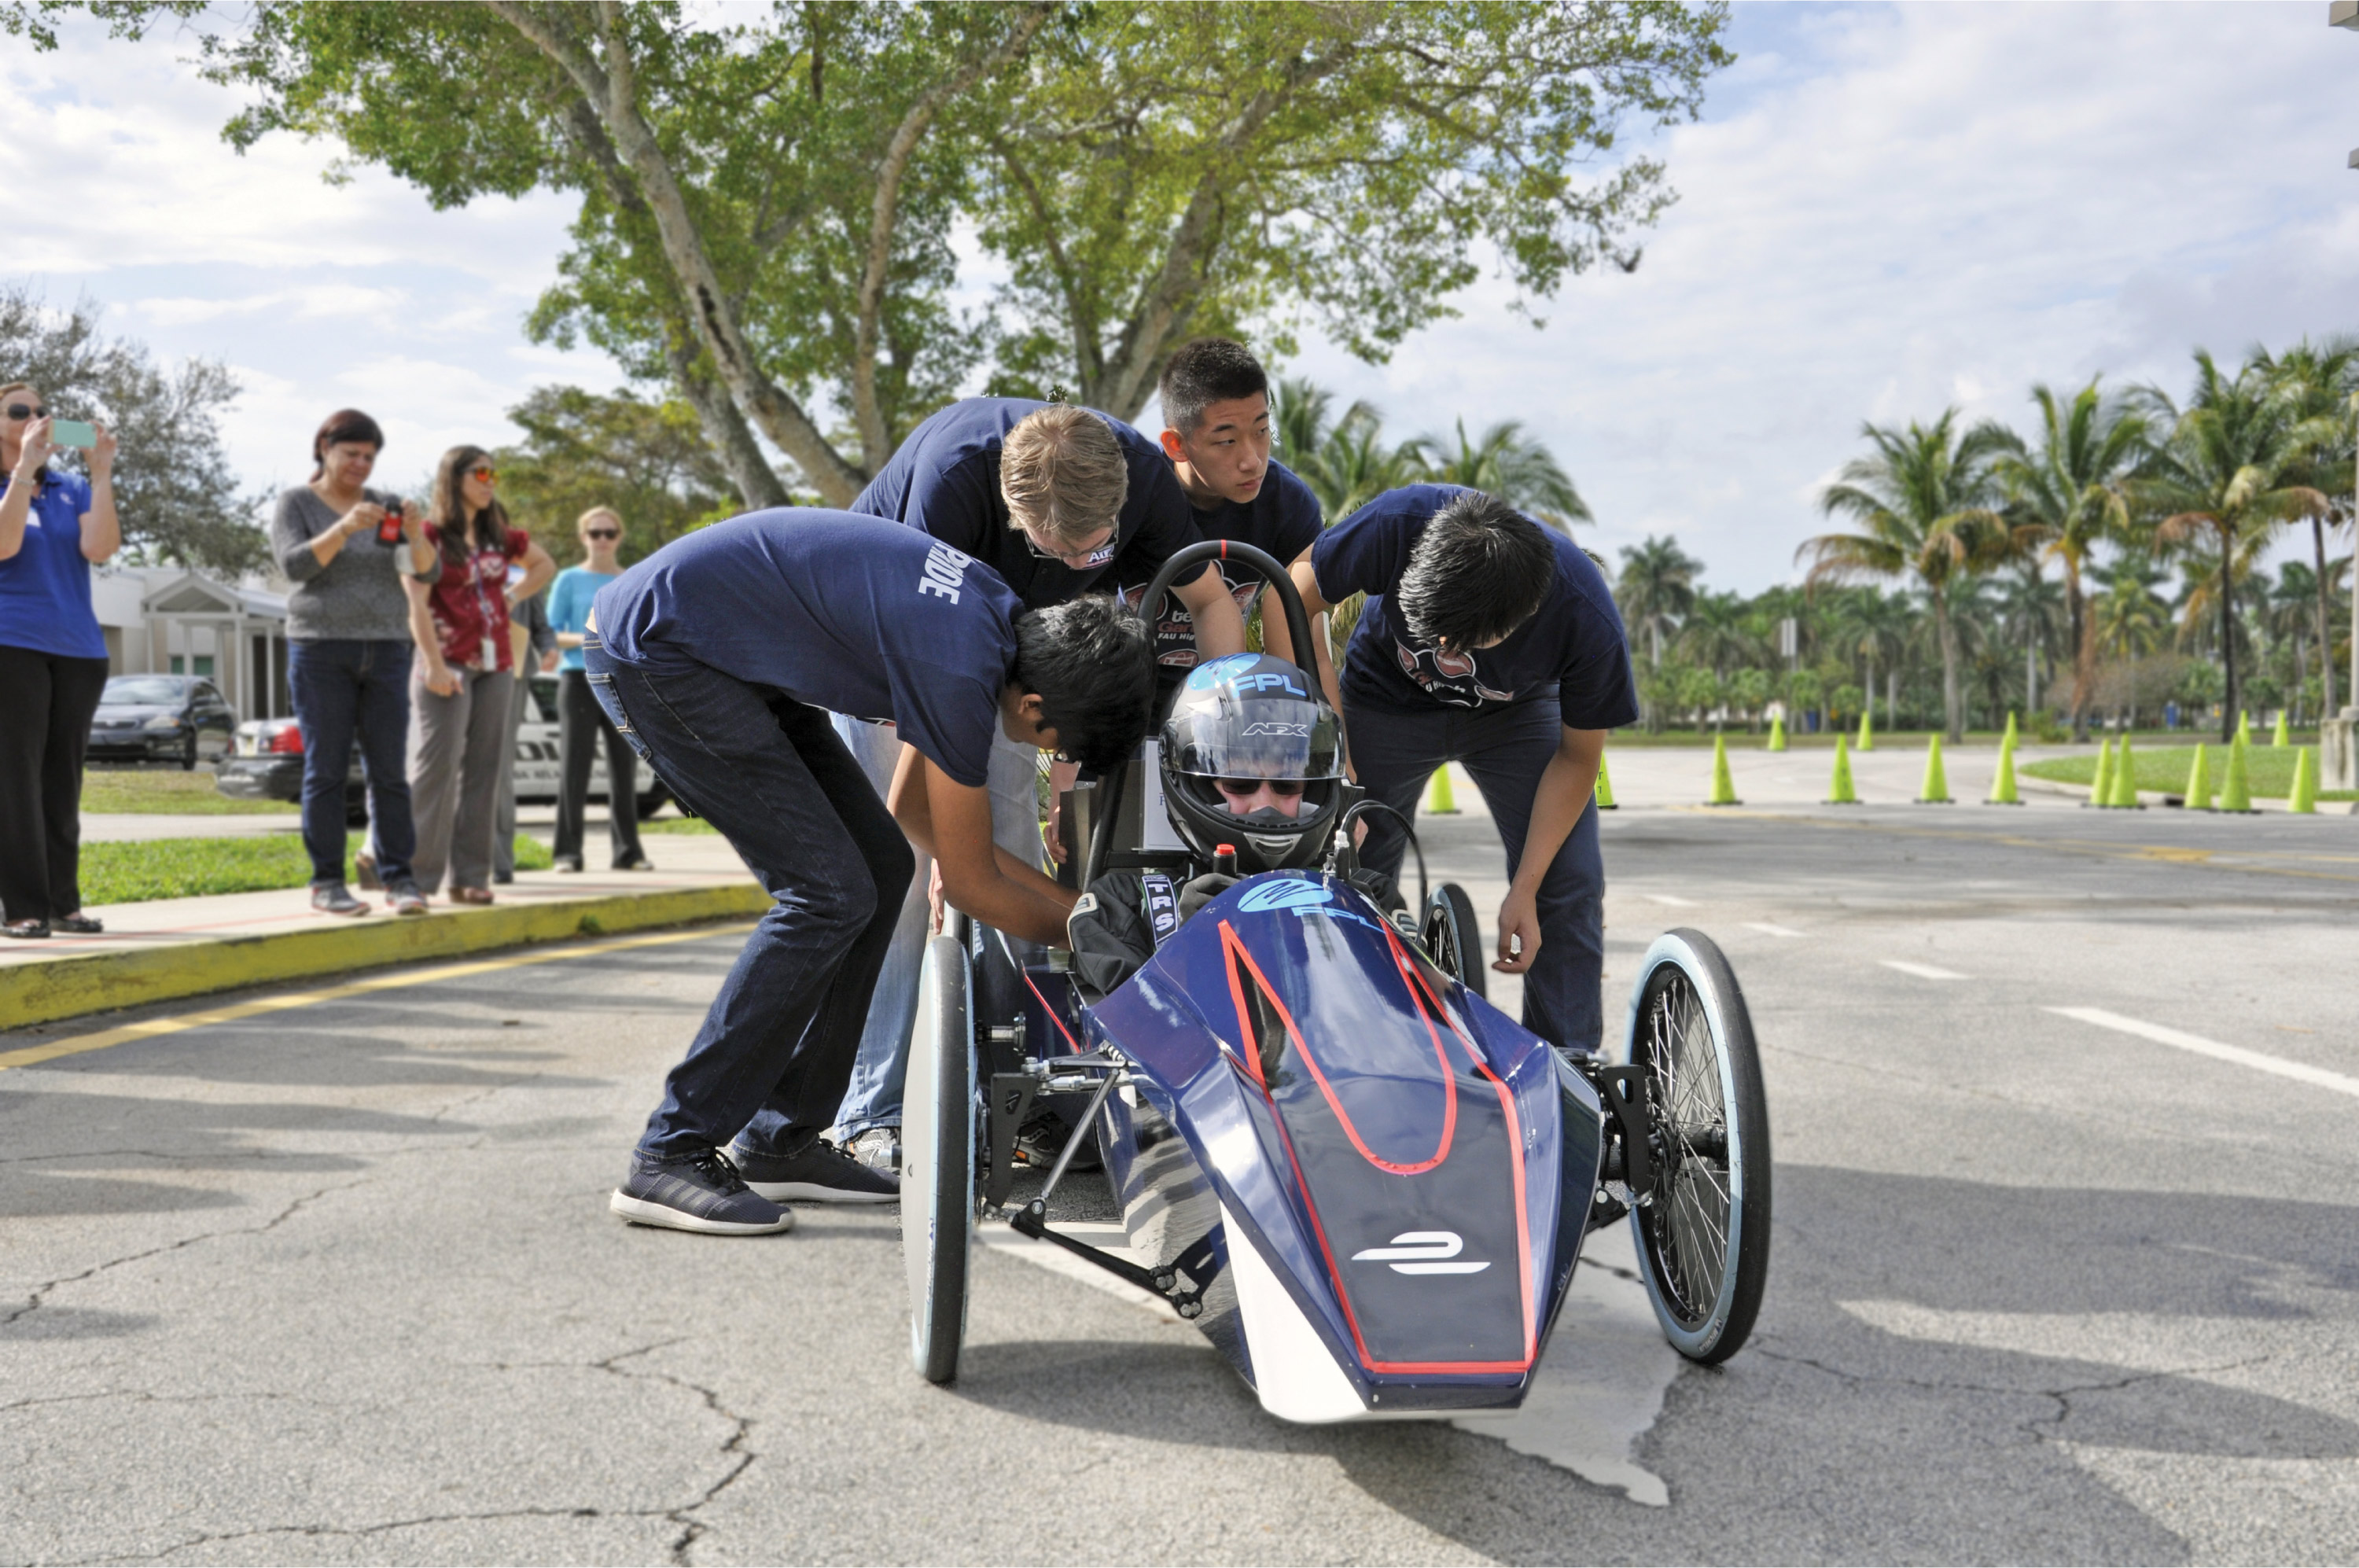 By engaging in myriad active, hands-on STEM learning and activities, students at Florida Atlantic University Lab School District have gained critical life skills.